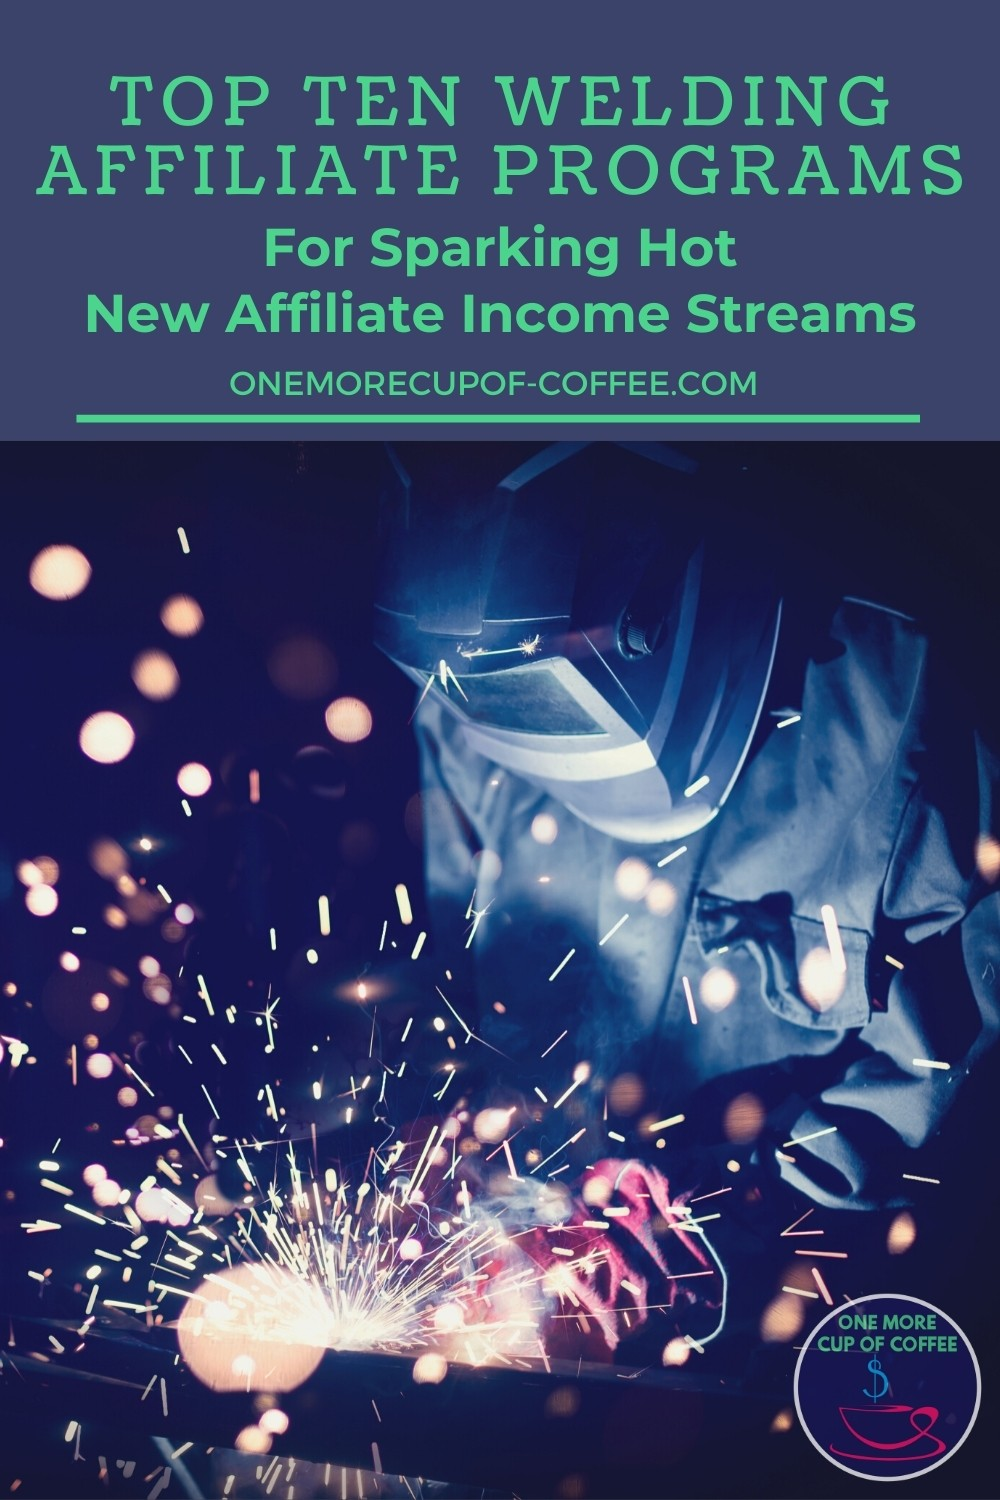 """welder with complete gear at work, with text at the top """"Top Ten Welding Affiliate Programs For Sparking Hot New Affiliate Income Streams"""""""